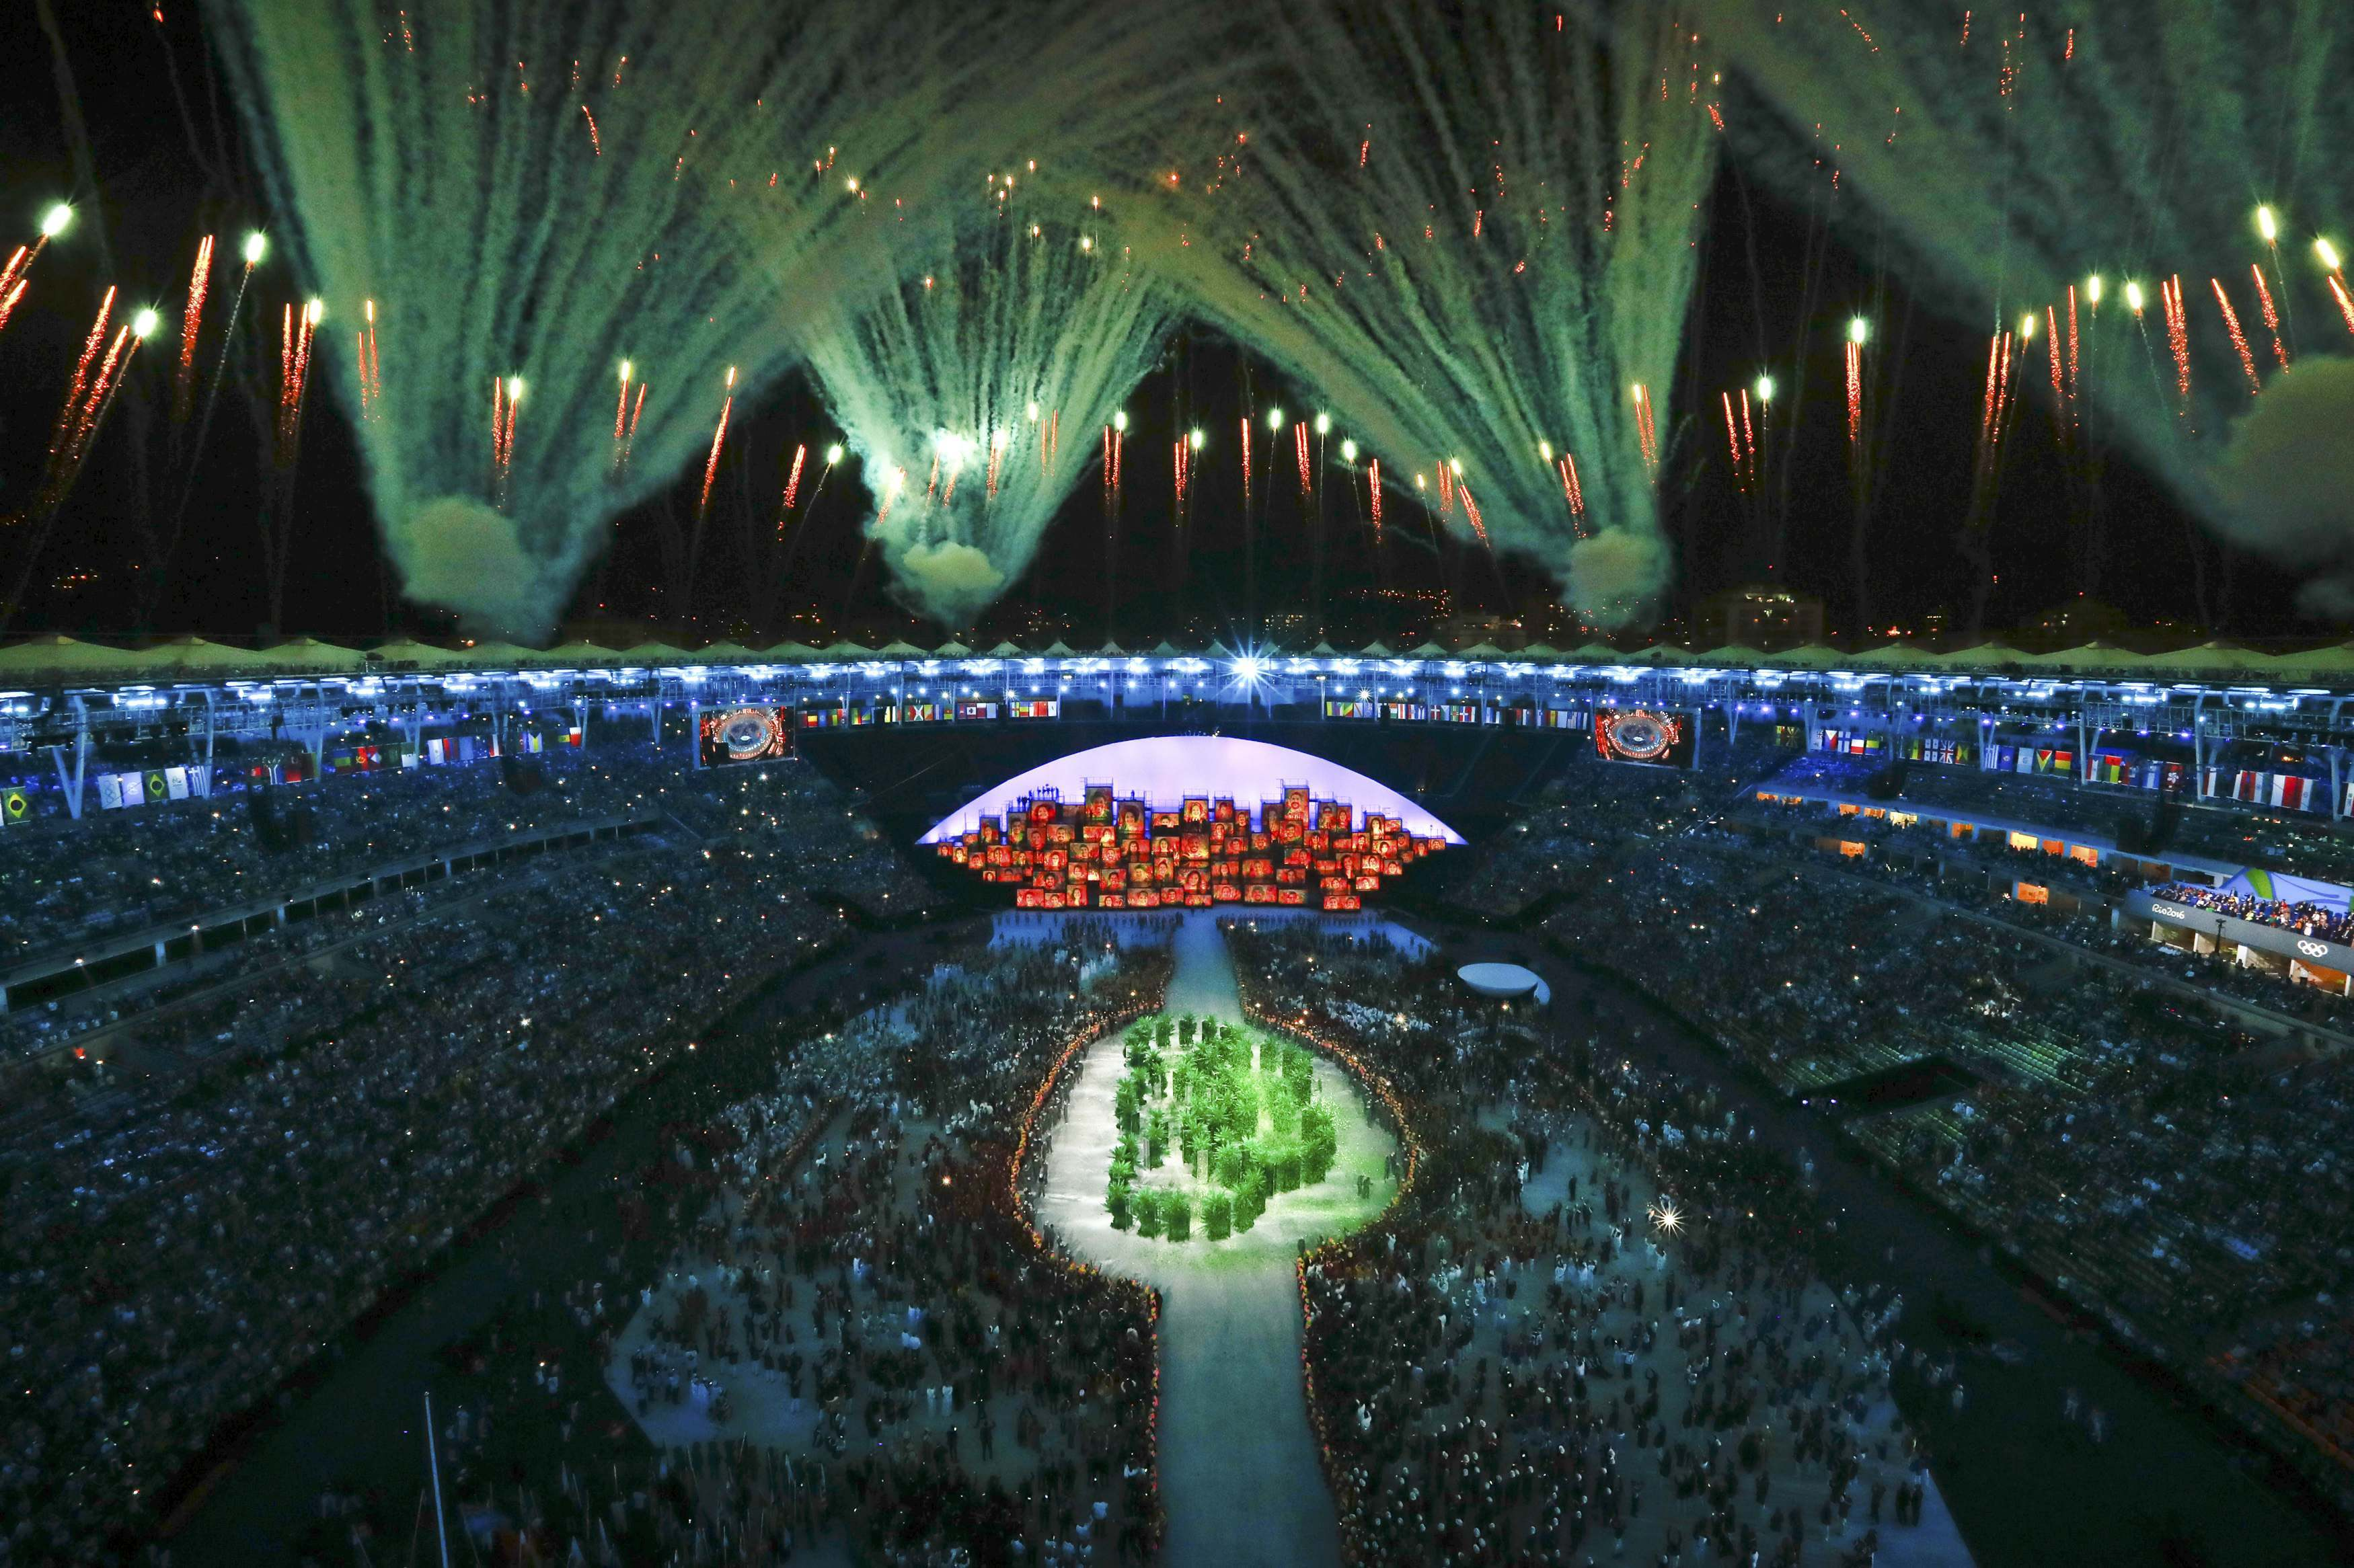 2016 Rio Olympics - Opening ceremony - Maracana - Rio de Janeiro, Brazil - 05/08/2016. Fireworks explode during the opening ceremony    REUTERS/Pawel Kopczynski FOR EDITORIAL USE ONLY. NOT FOR SALE FOR MARKETING OR ADVERTISING CAMPAIGNS.